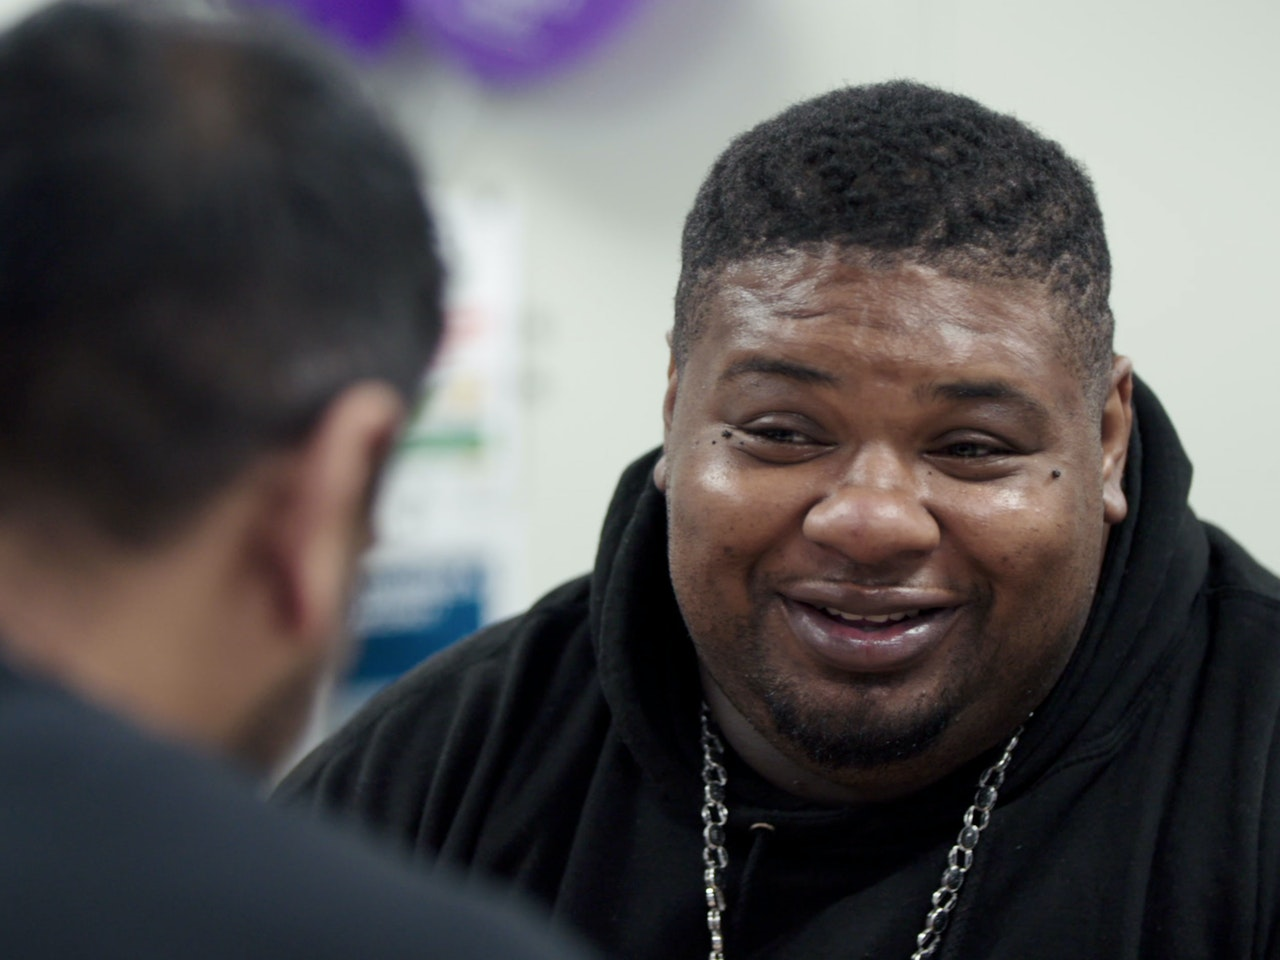 New Work: Camera Op - Carphone Warehouse Black Friday Video ft. Big Narstie